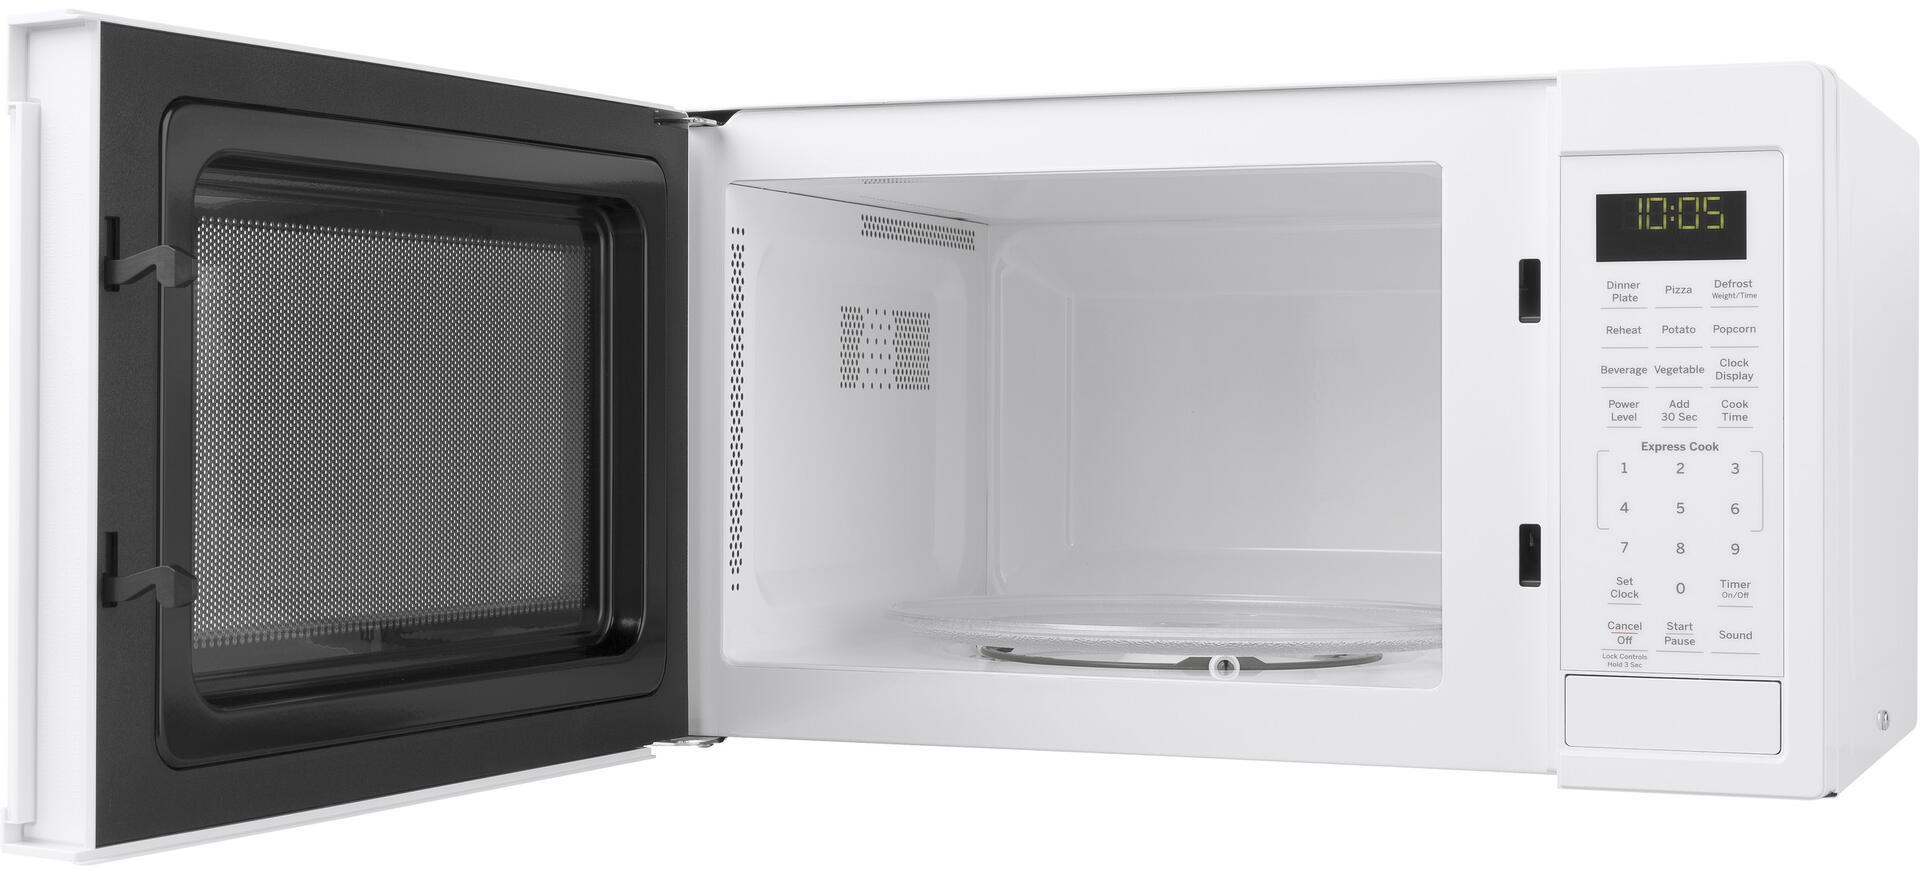 General Electric Jes1095dmbb 19 Inch Countertop Microwave